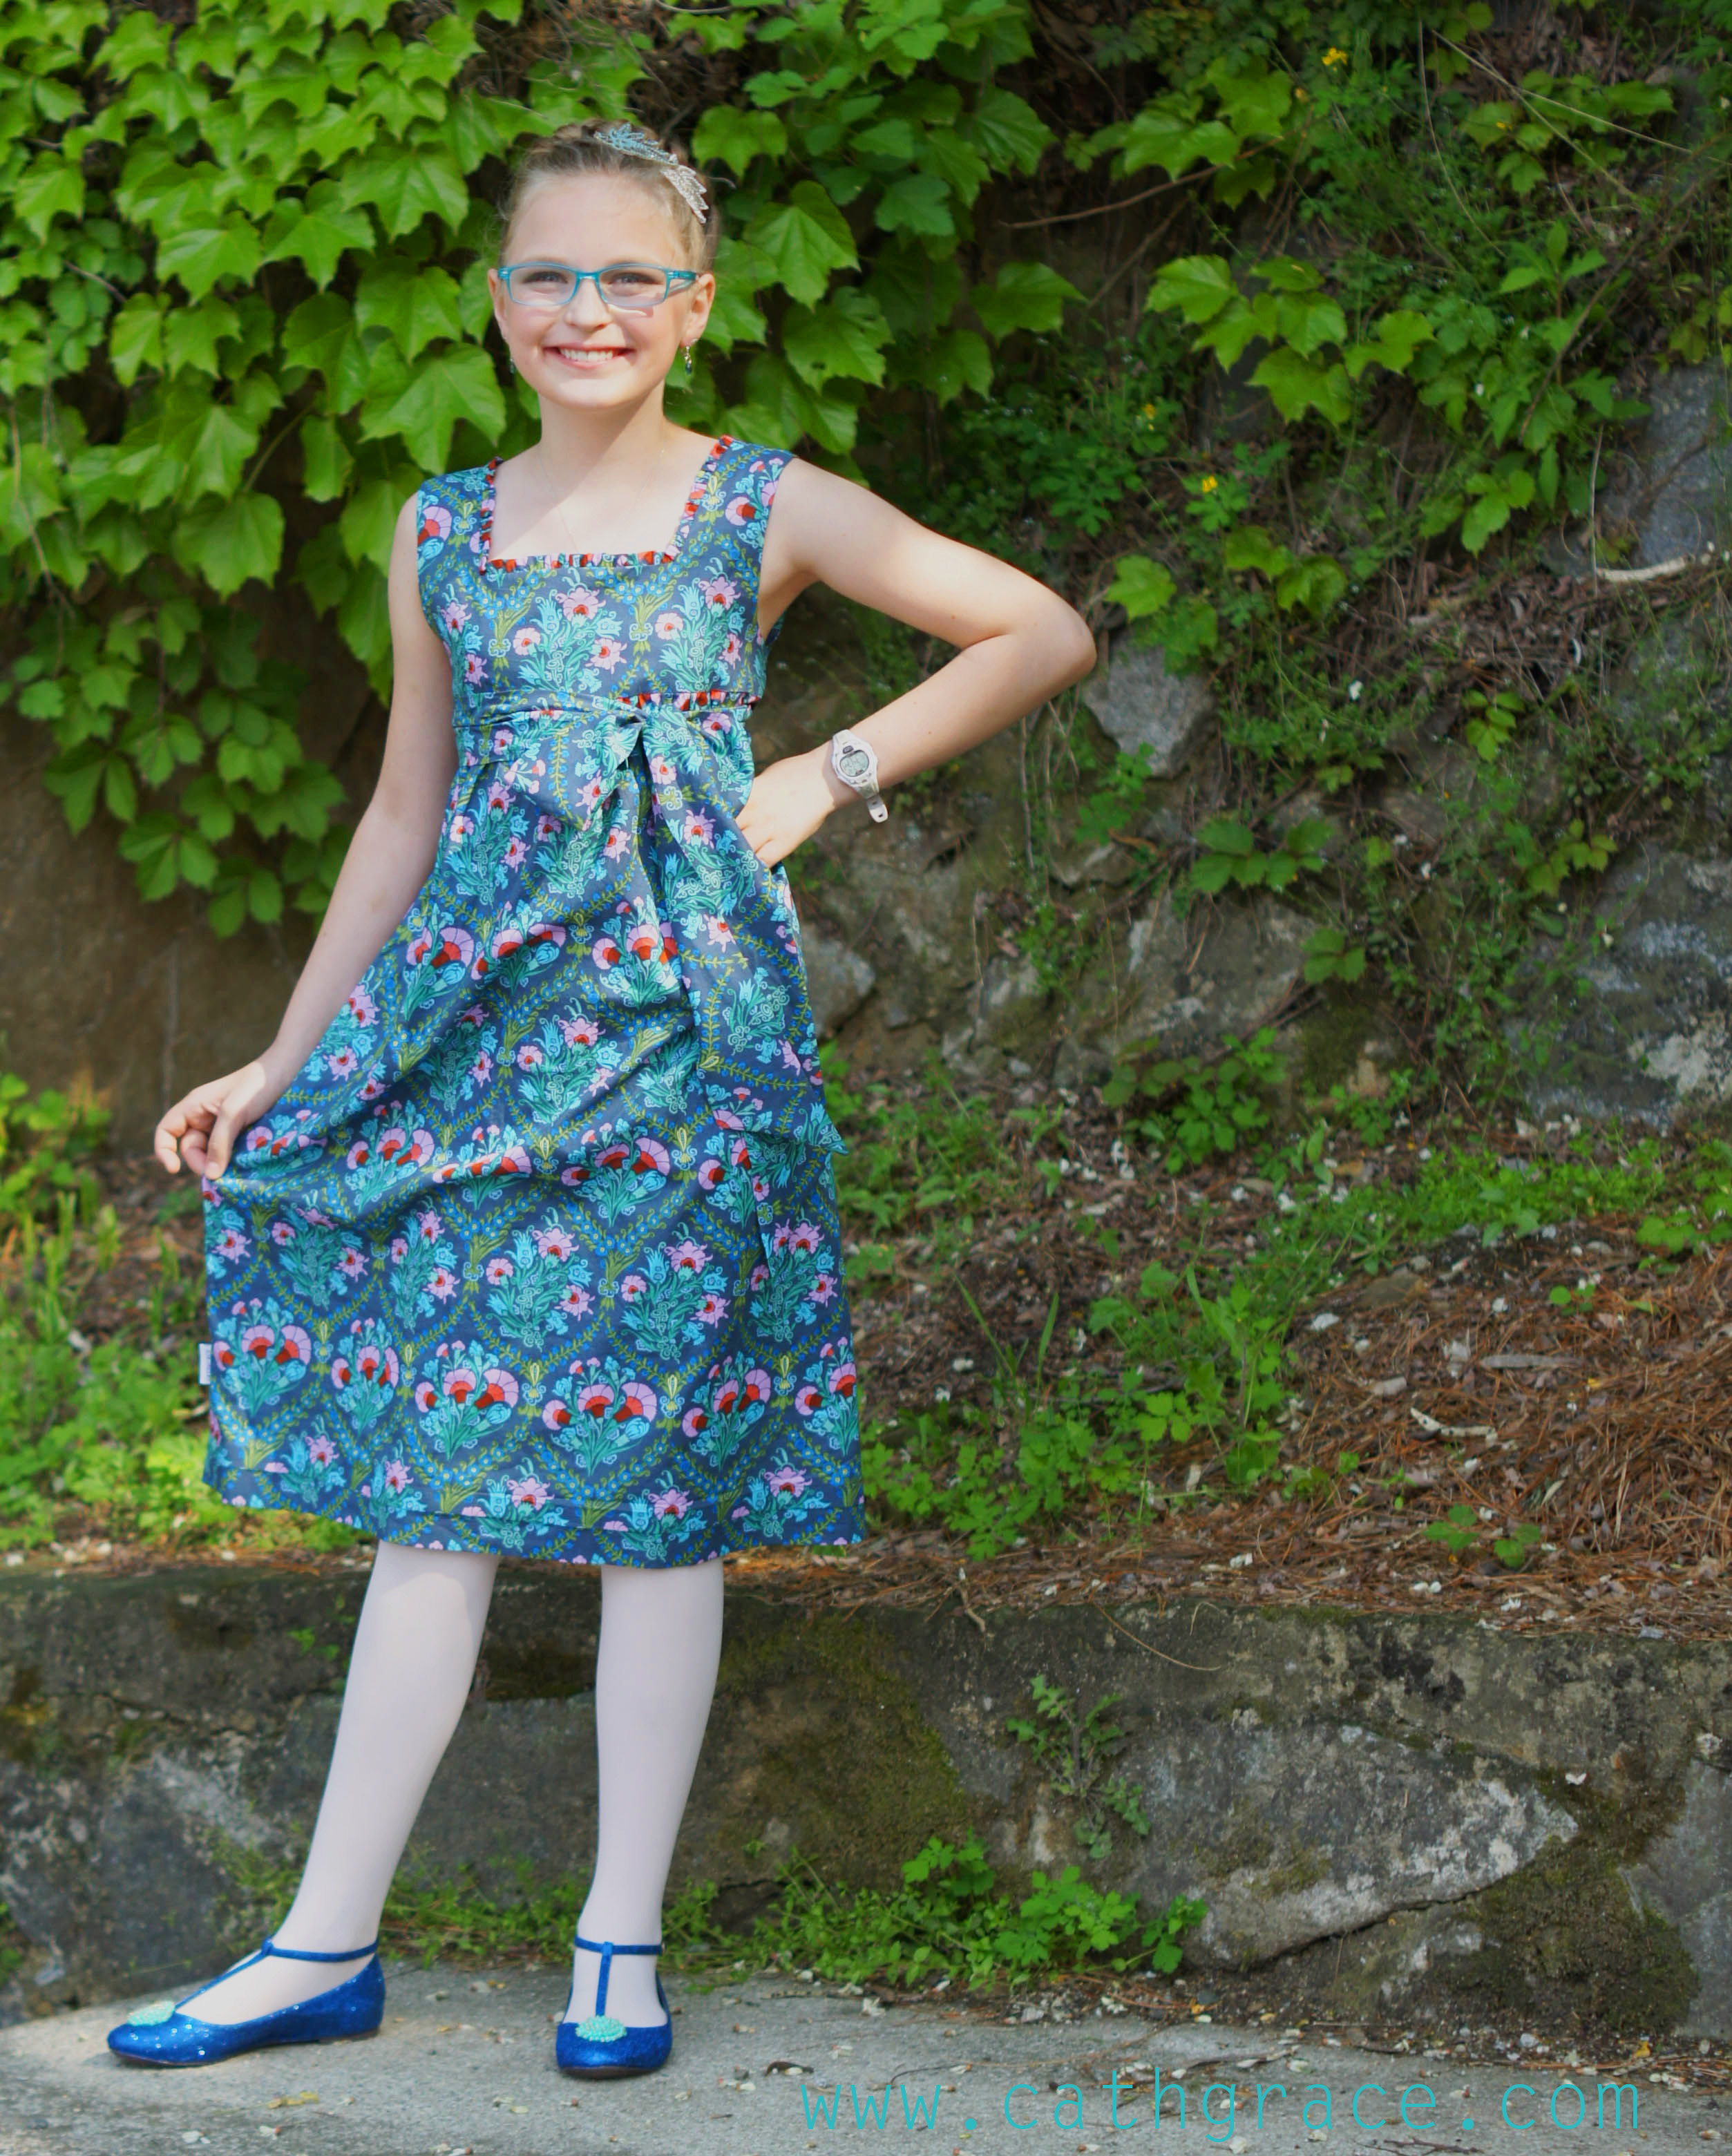 Boys Wear Skirts And Dresses Stories